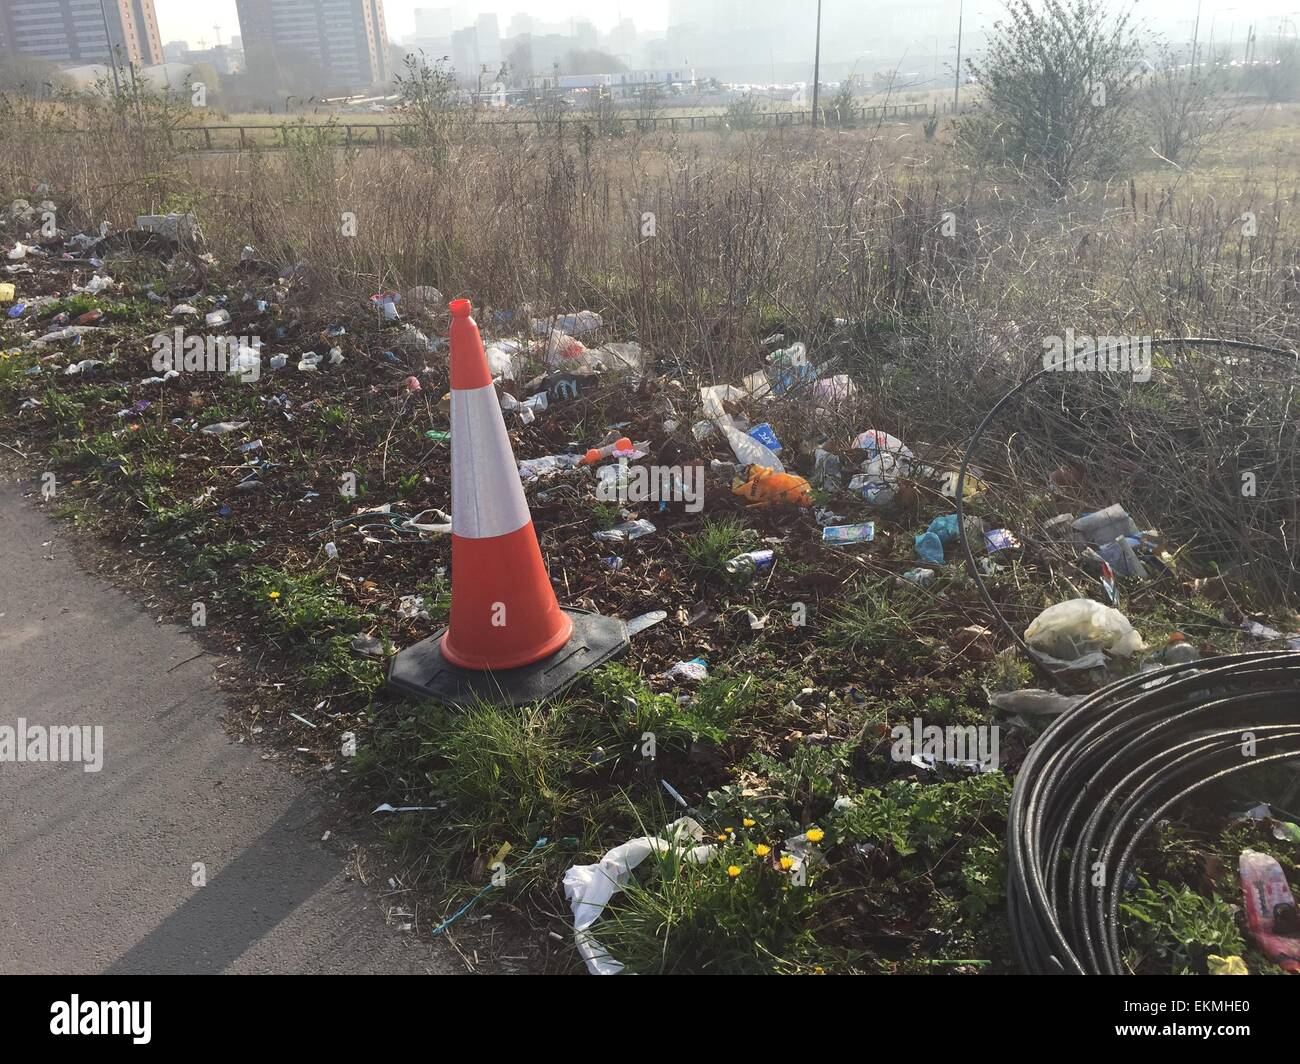 Littering in Manchester - Stock Image